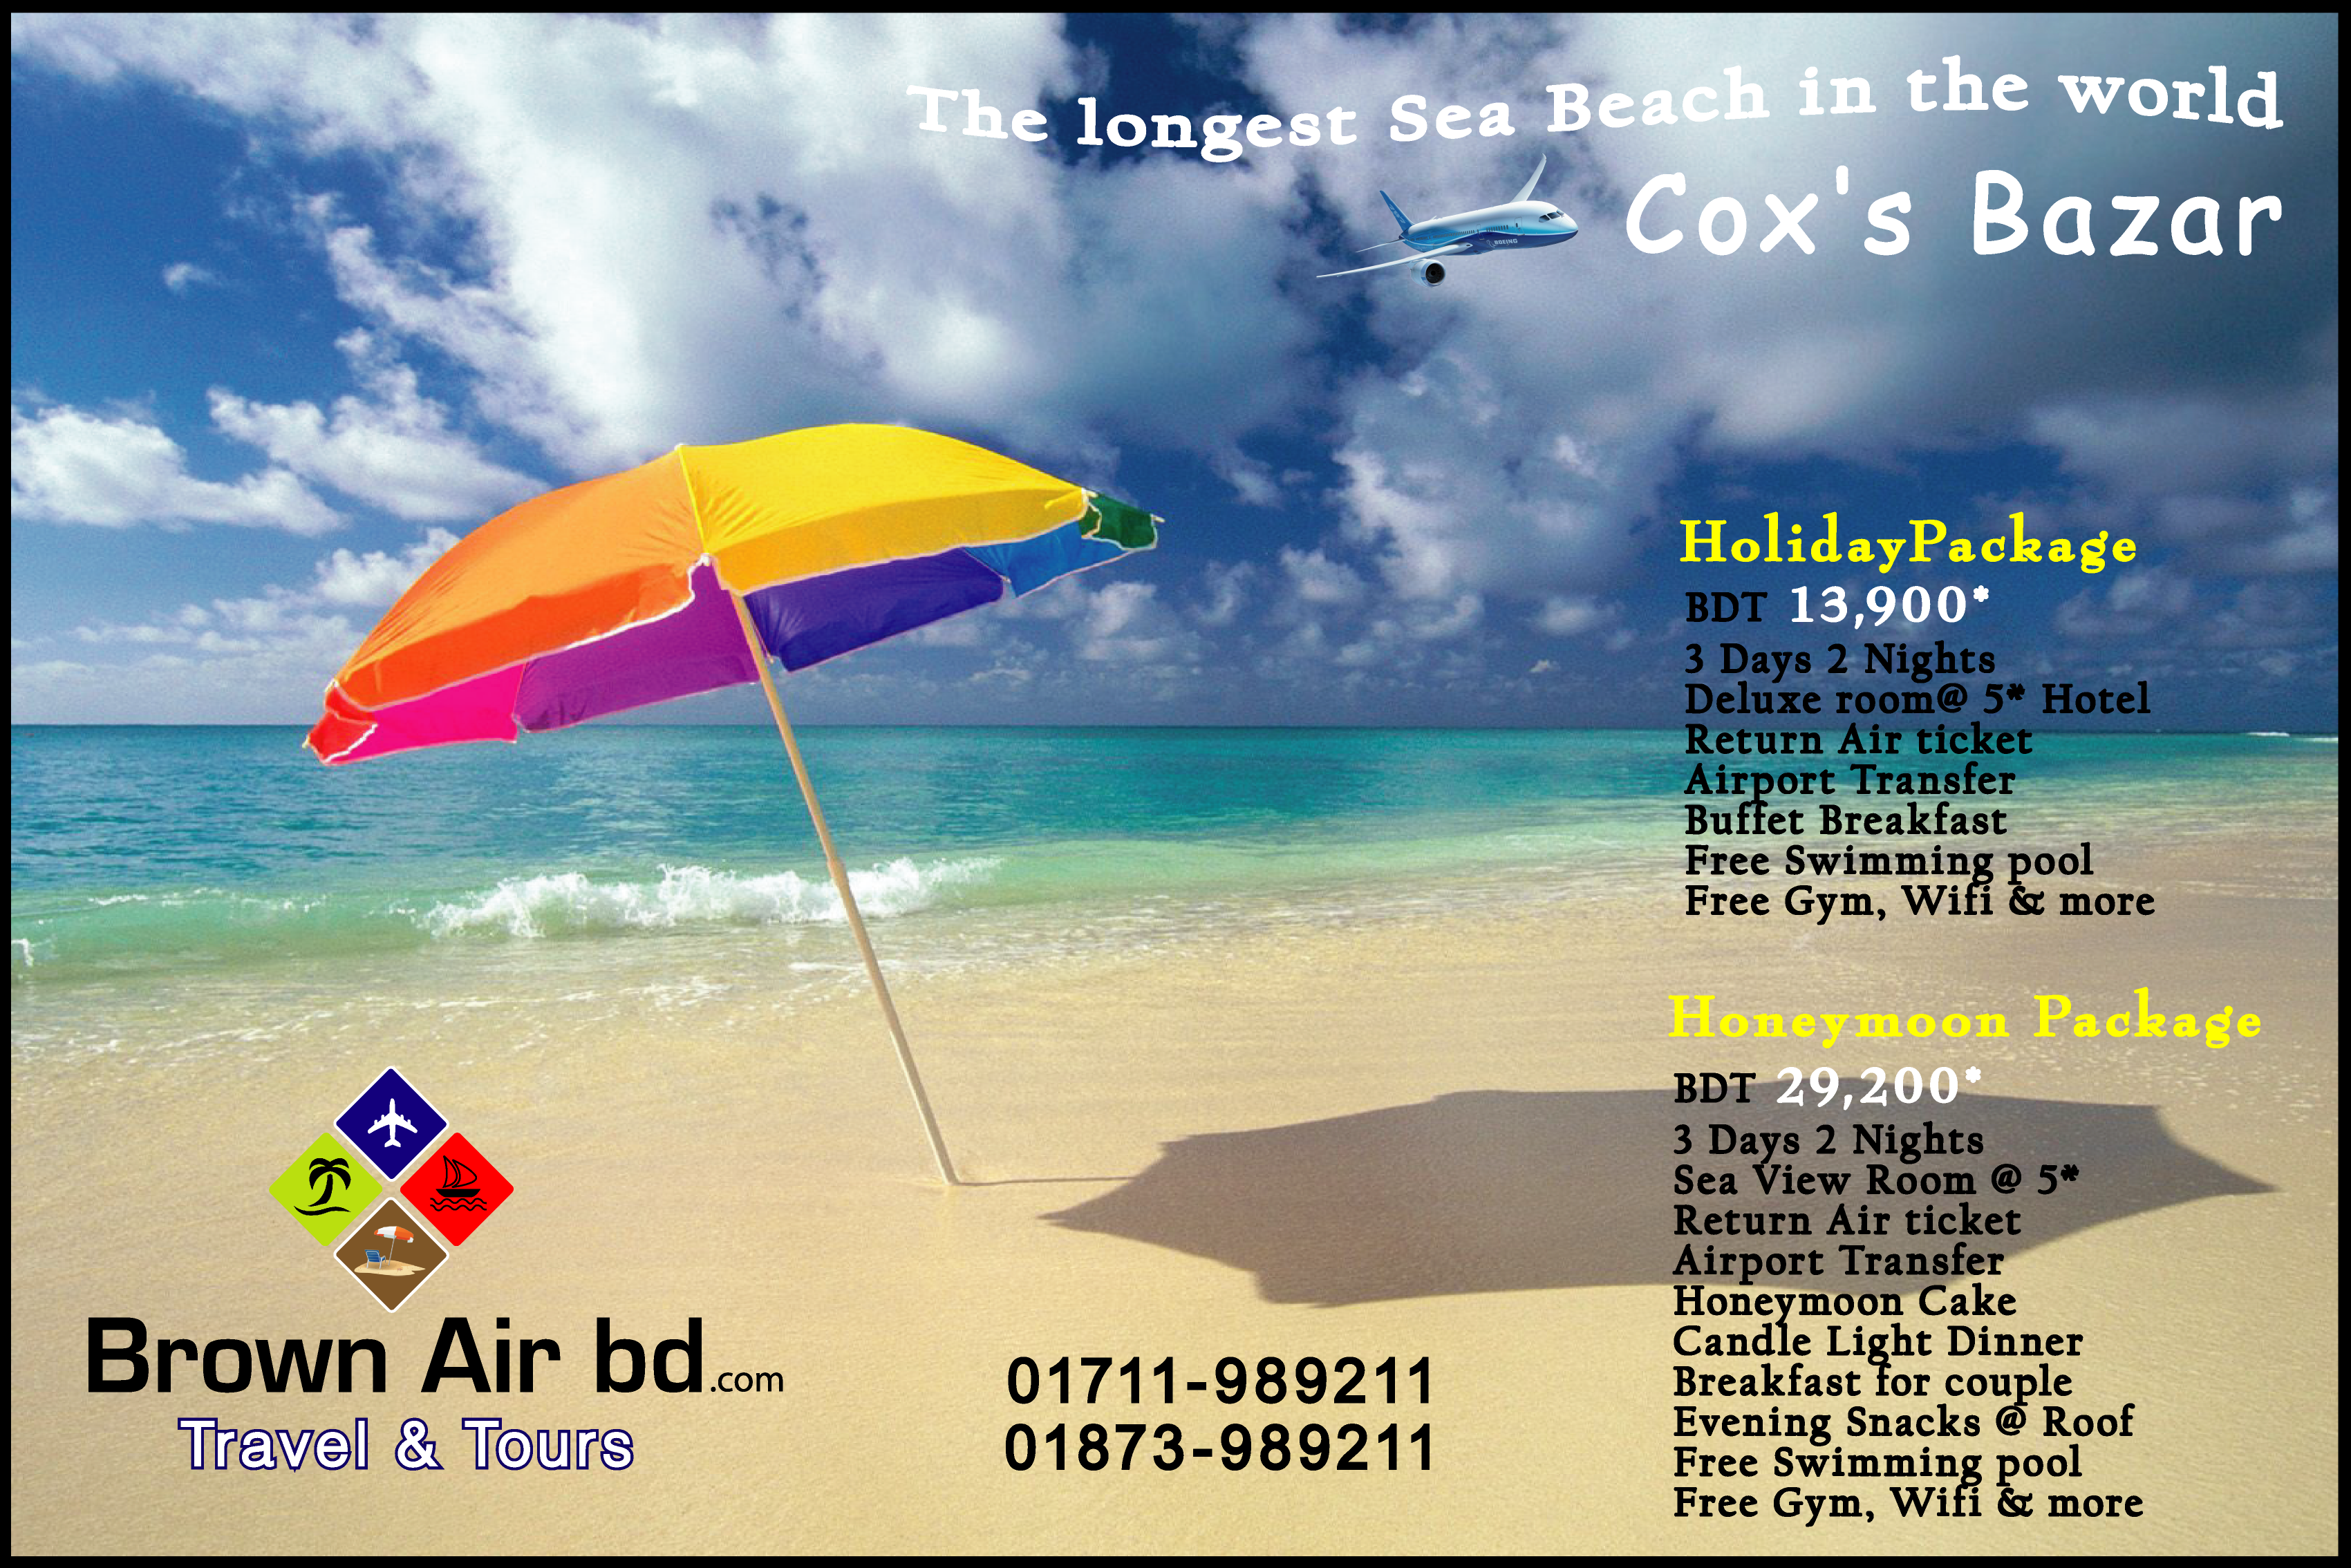 Coxs bazar Package 0ct15